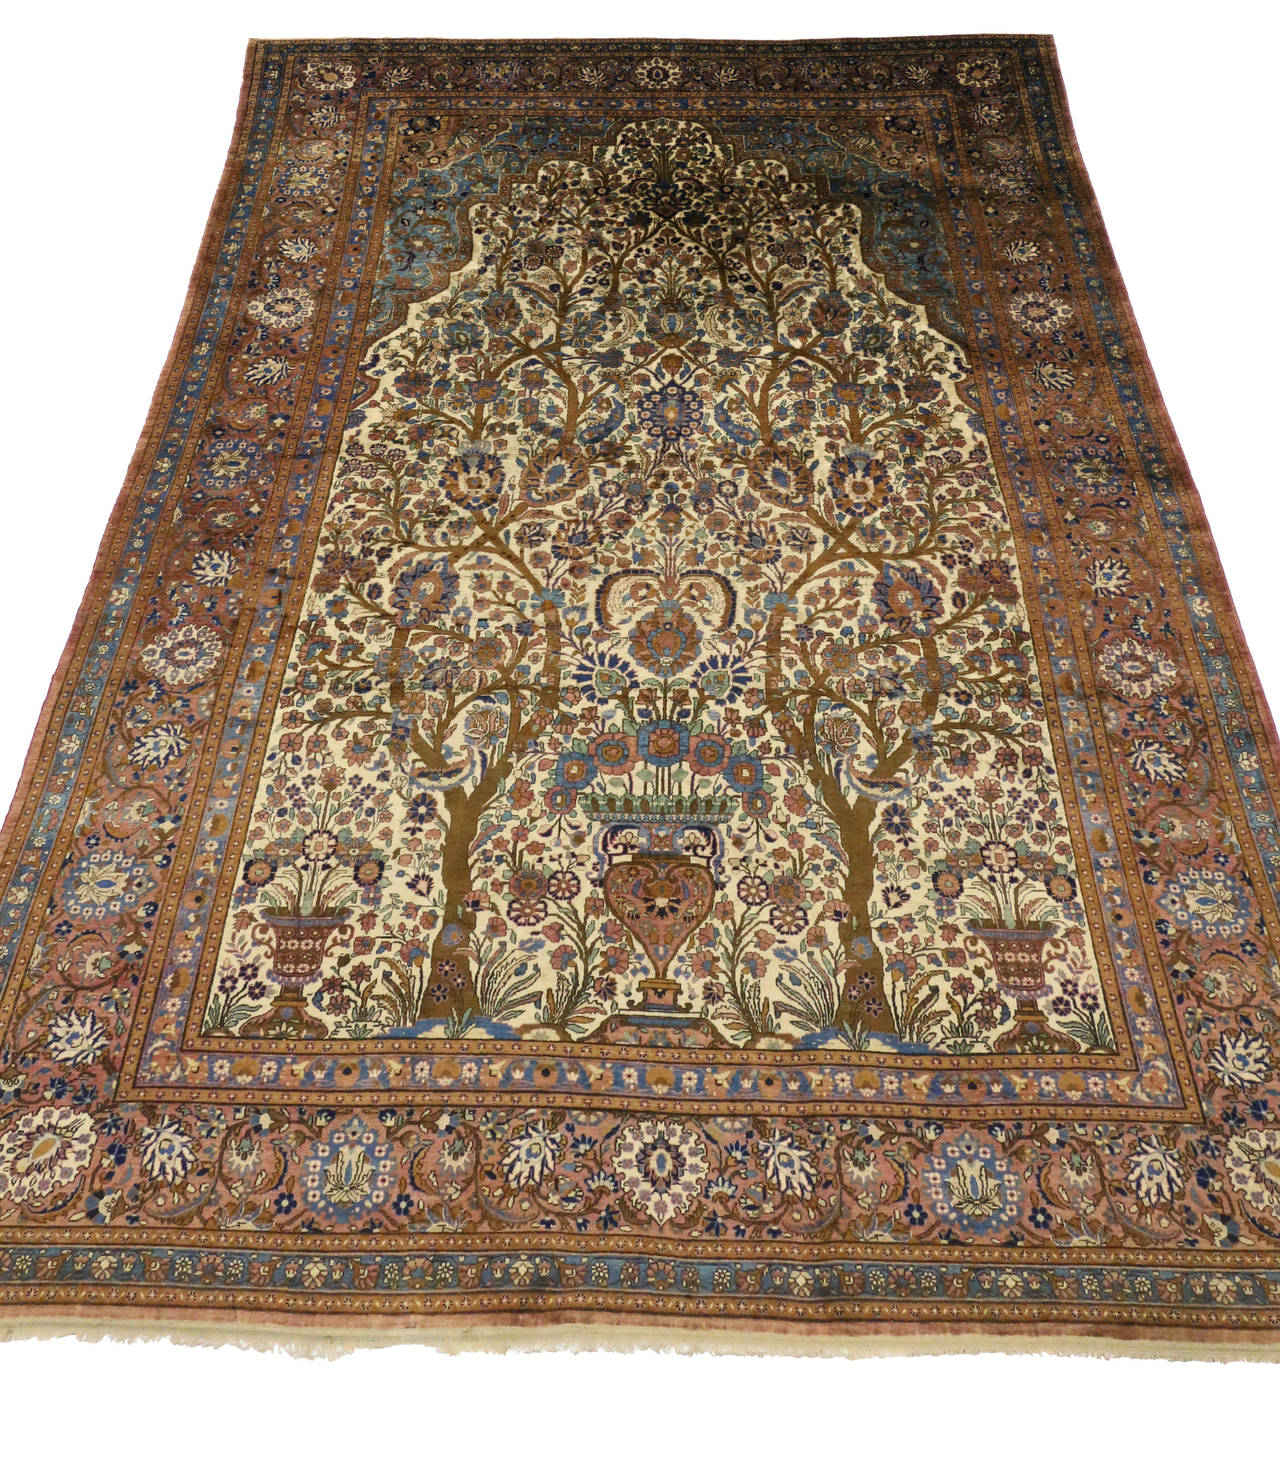 Antique Persian Mohtasham Kashan Silk Directional Rug with Neoclassic Style For Sale 1